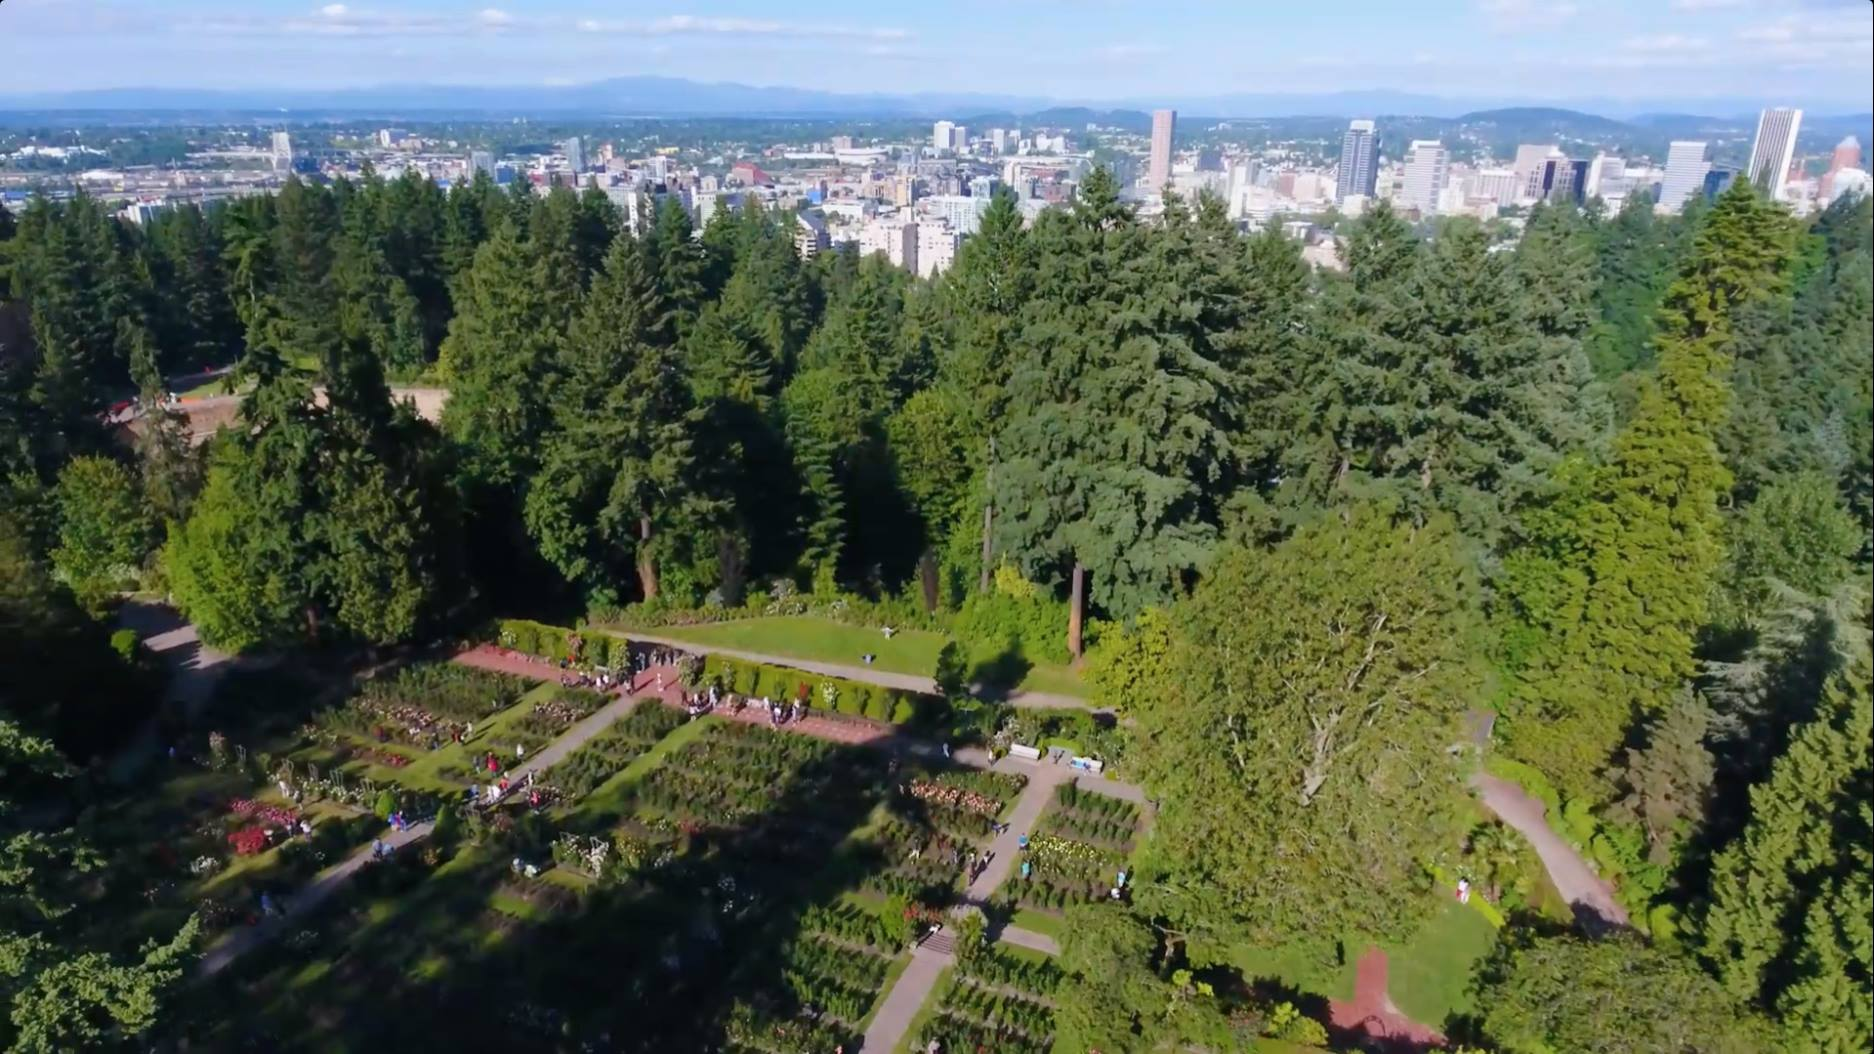 Aerial shot of forest and cityscape